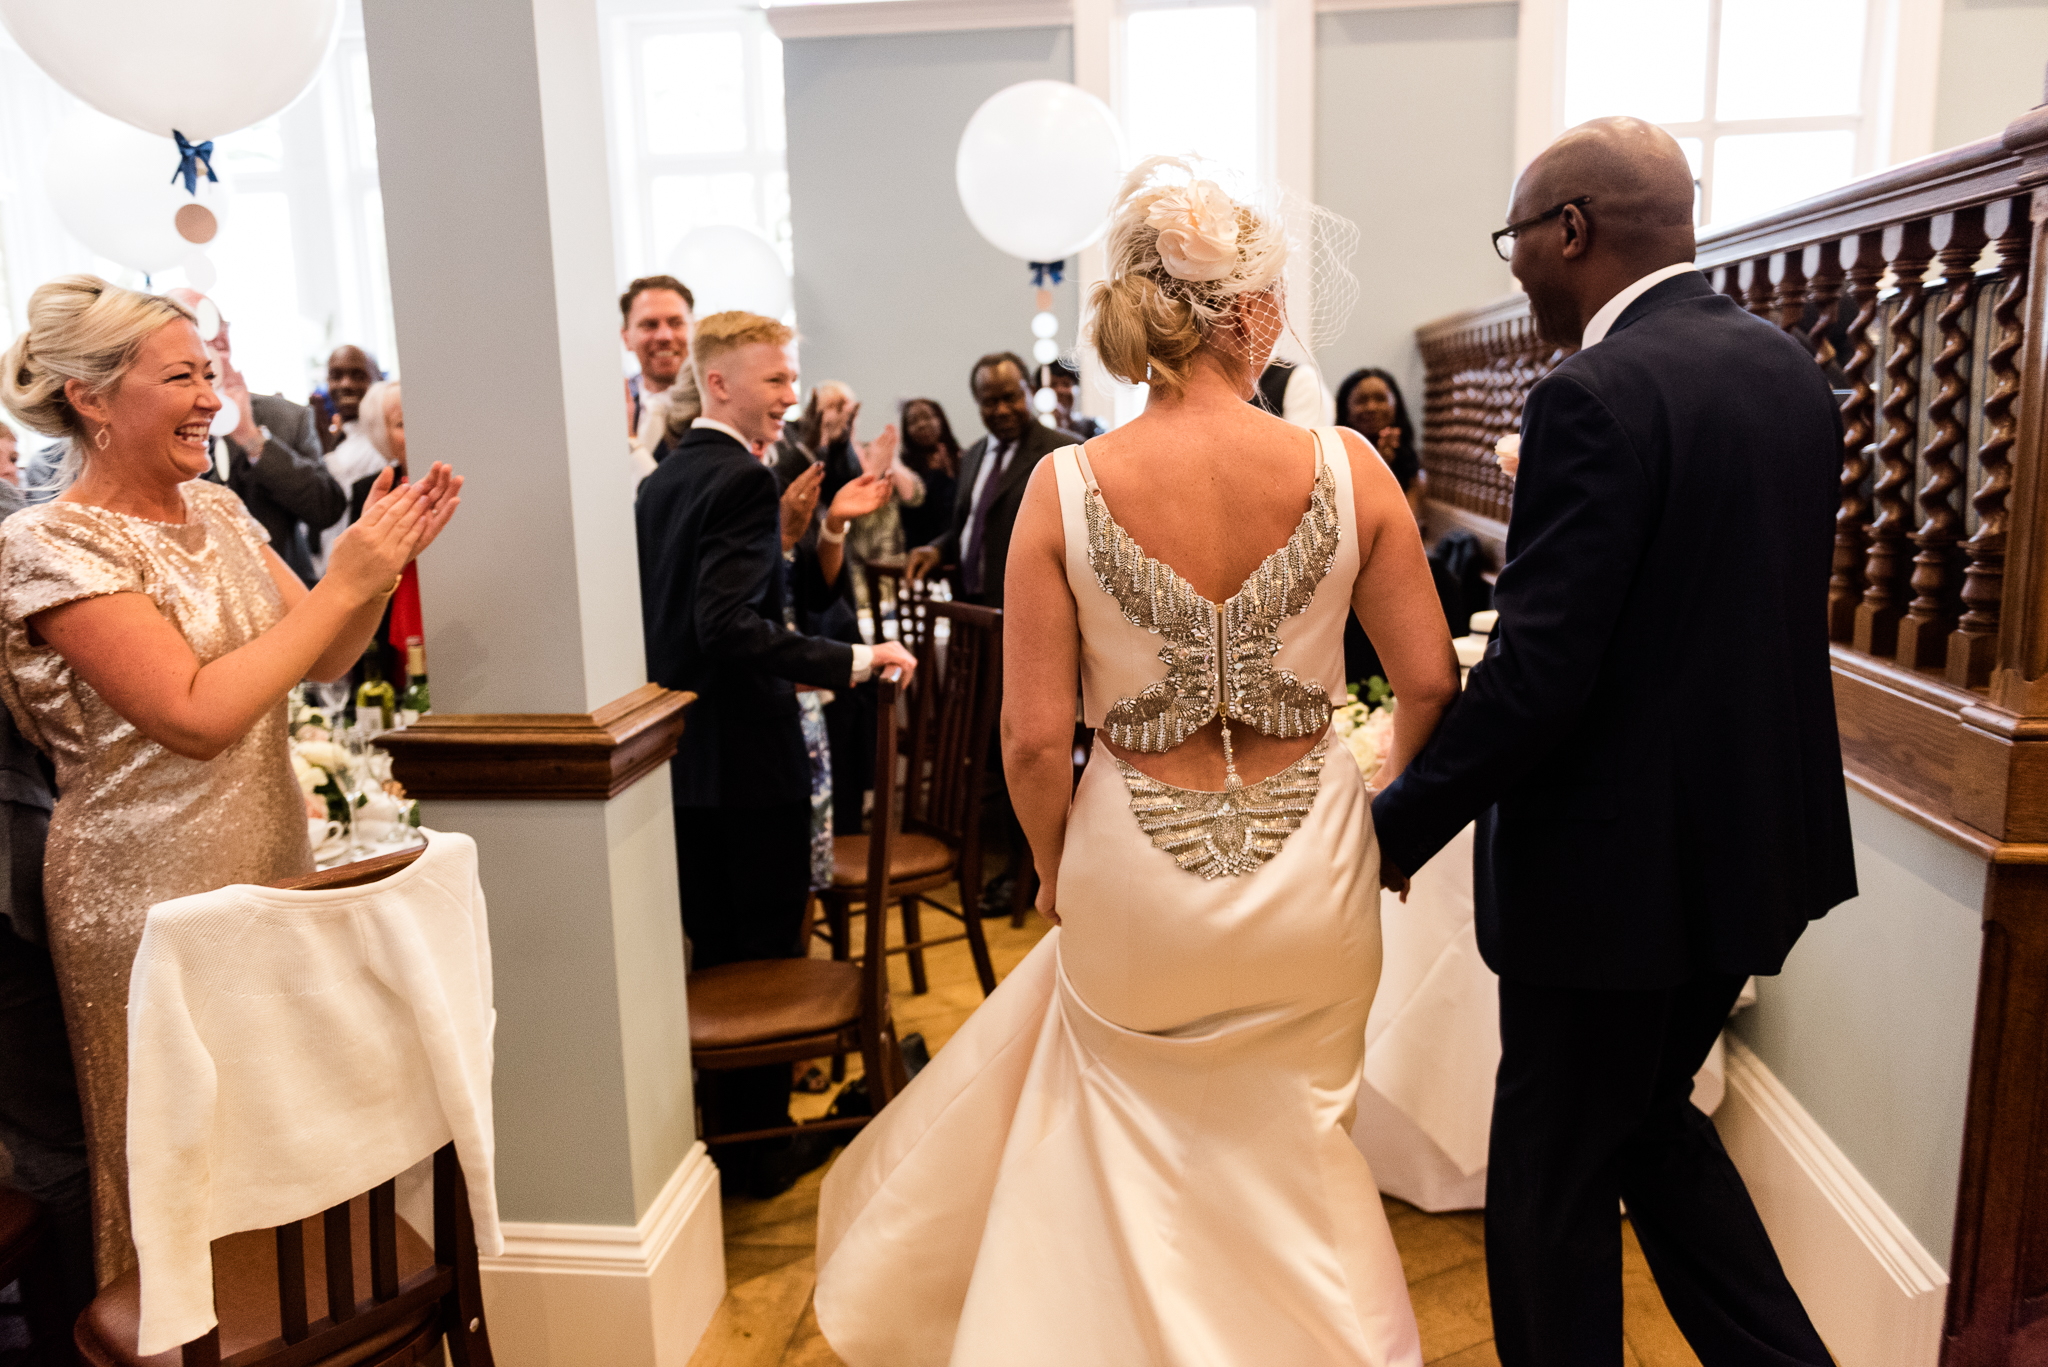 Stylish Easter Wedding at Pendrell Hall Country House Wedding Venue Staffordshire - Jenny Harper-37.jpg